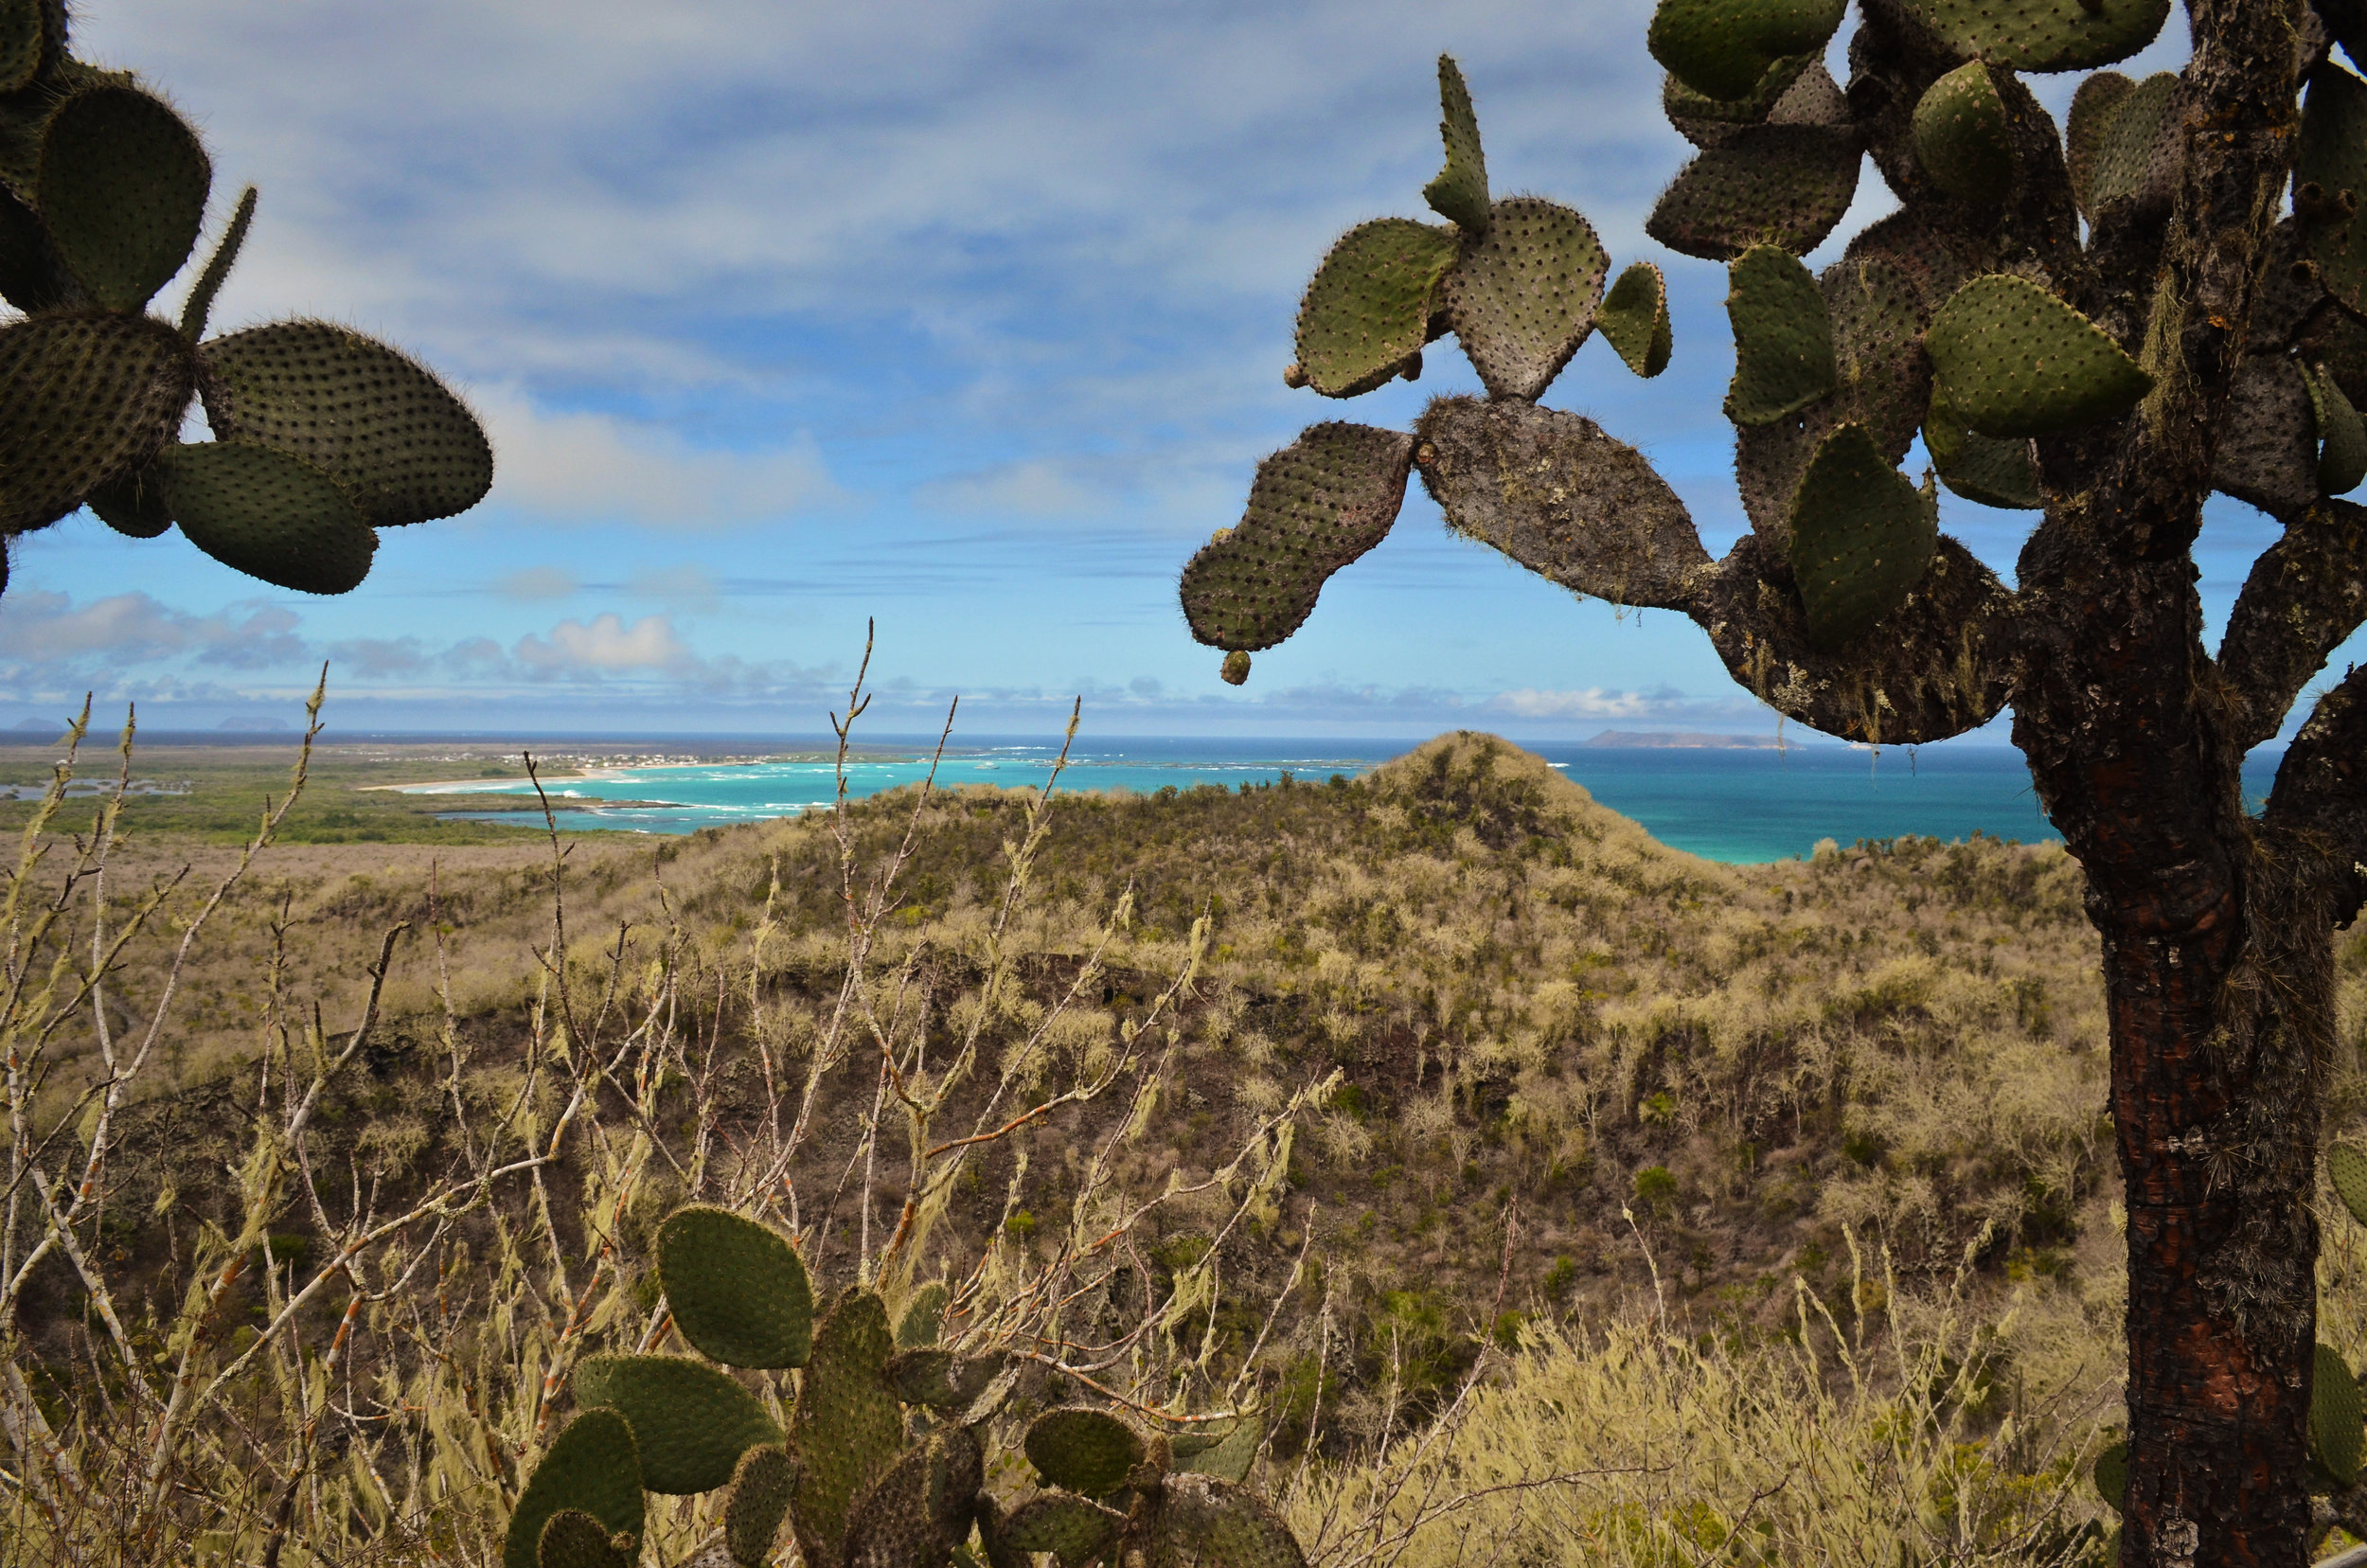 Cacti and dry brush meet turquoise waters on Isabela Island